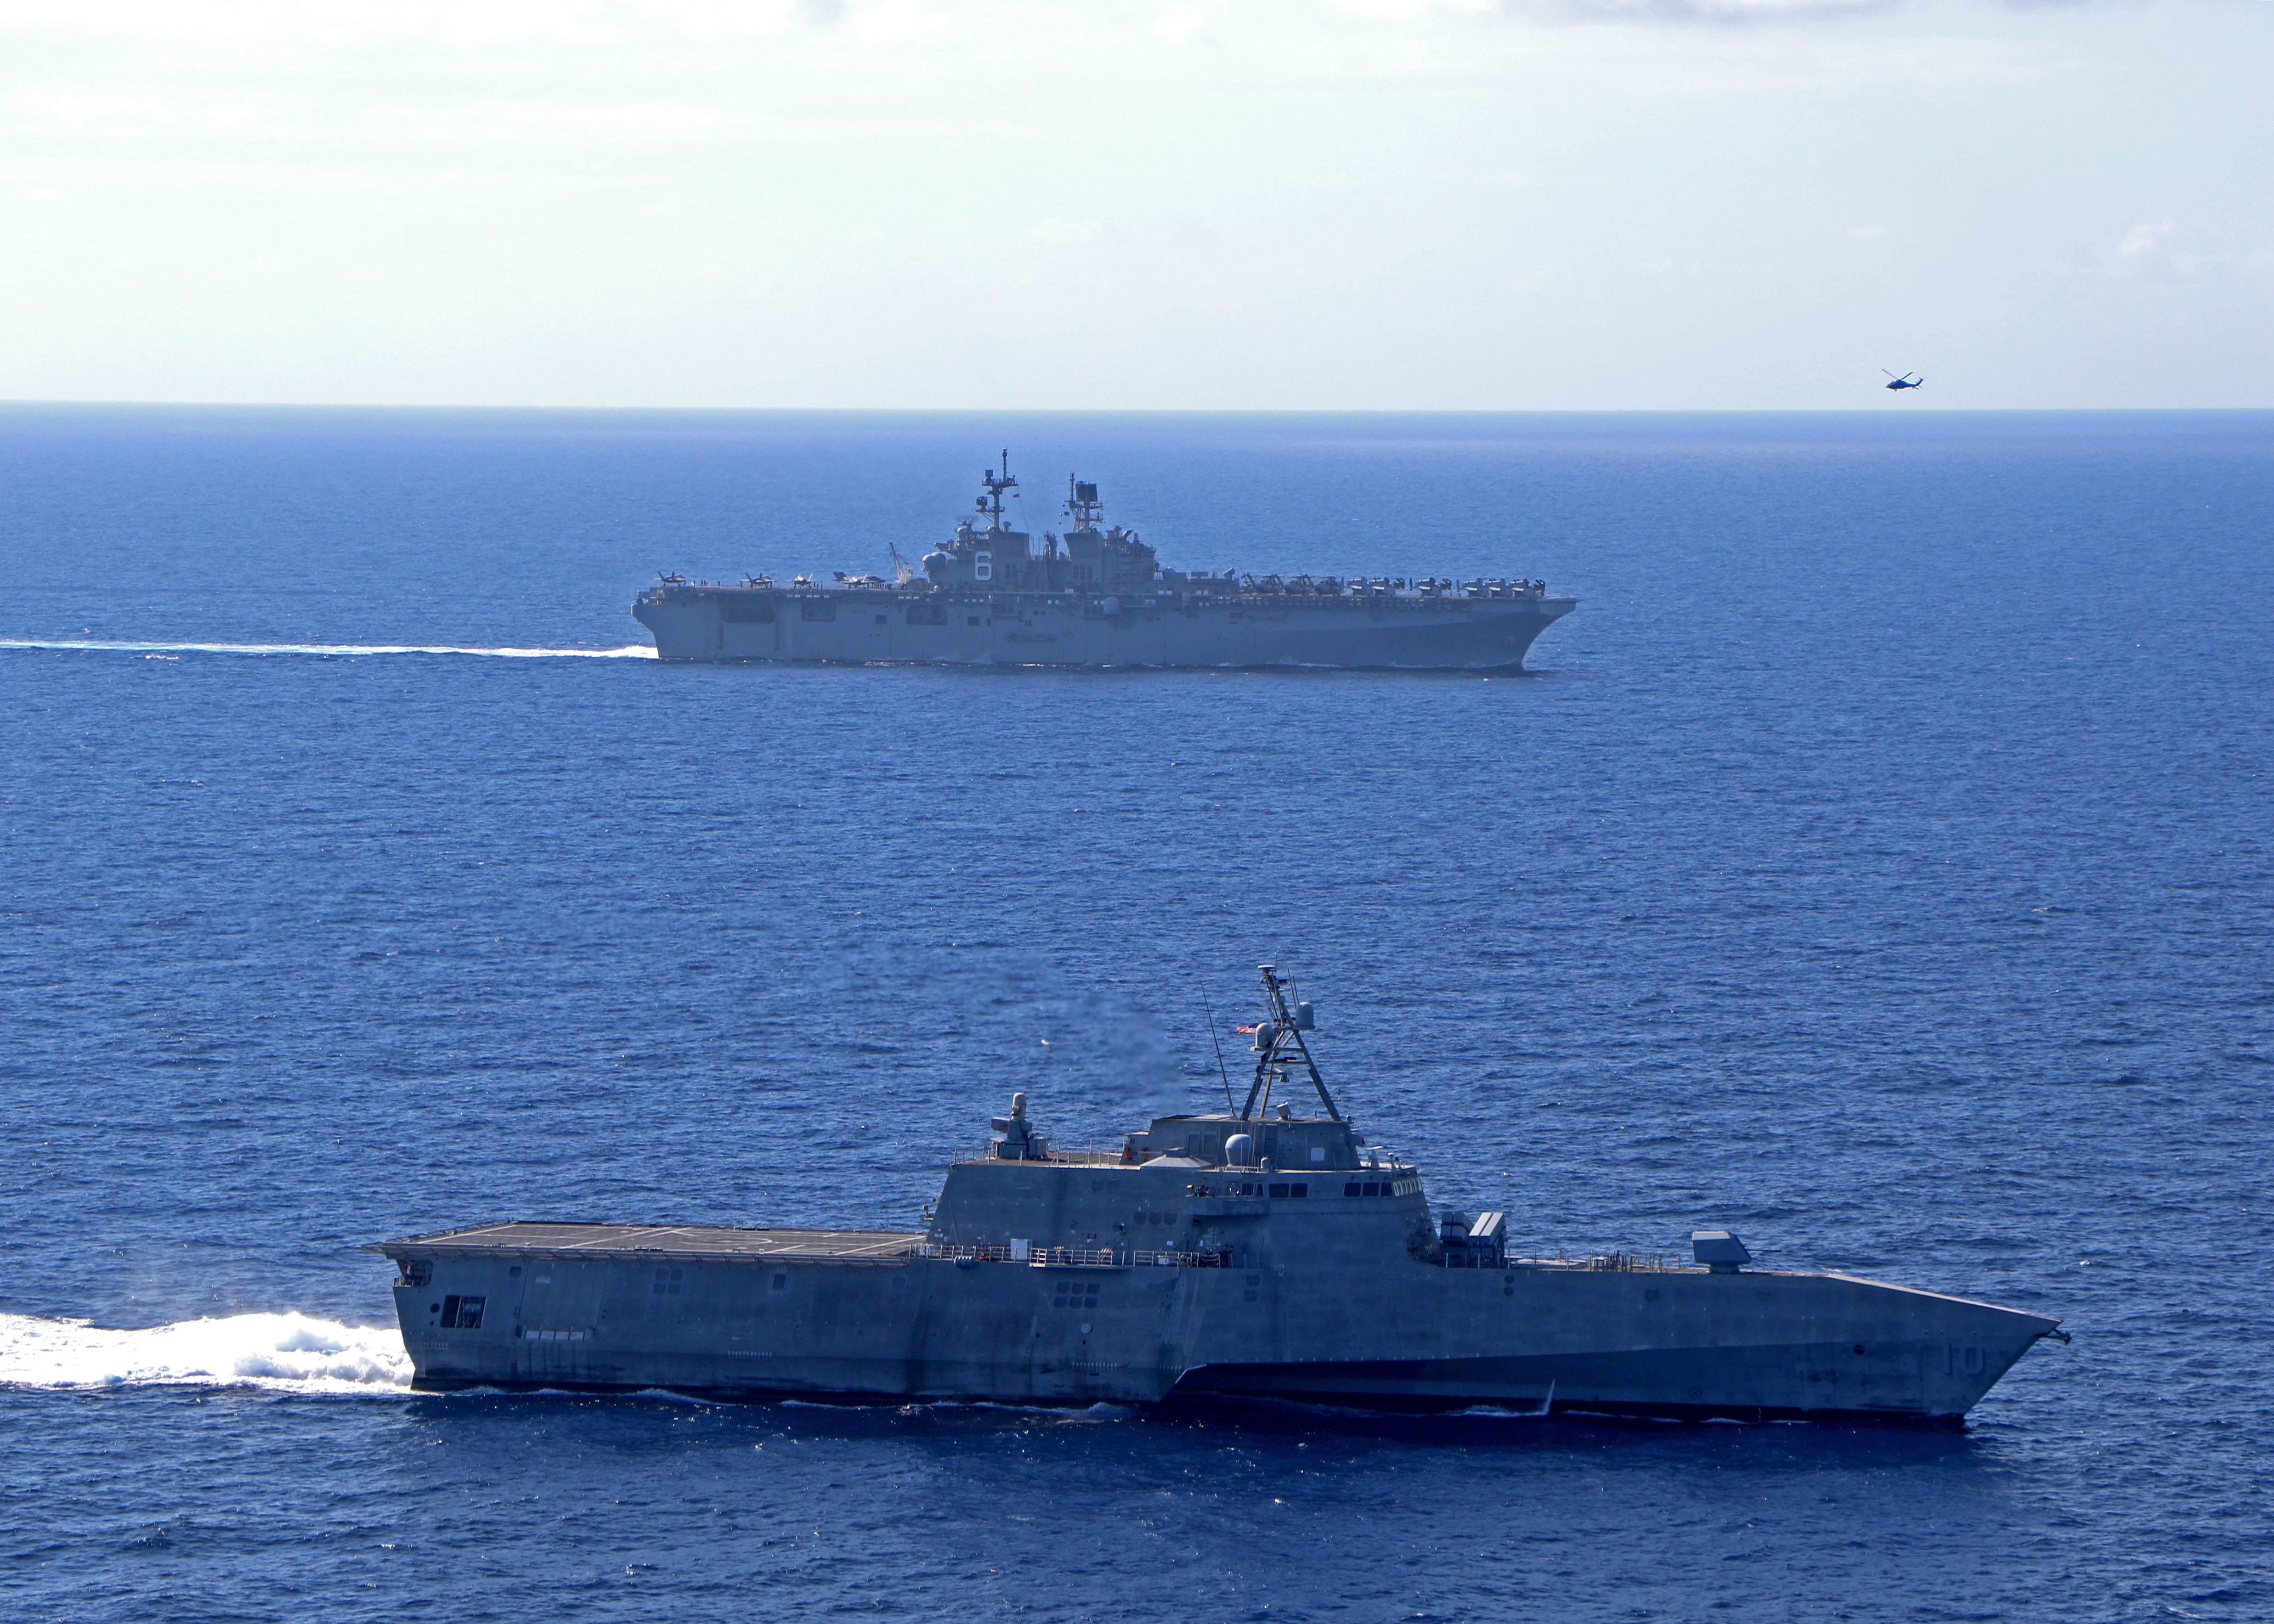 The amphibious assault ship America sails alongside Independence-variant littoral combat ship Gabrielle Giffords on March 13, 2020, in the South China Sea. (U.S. Navy)